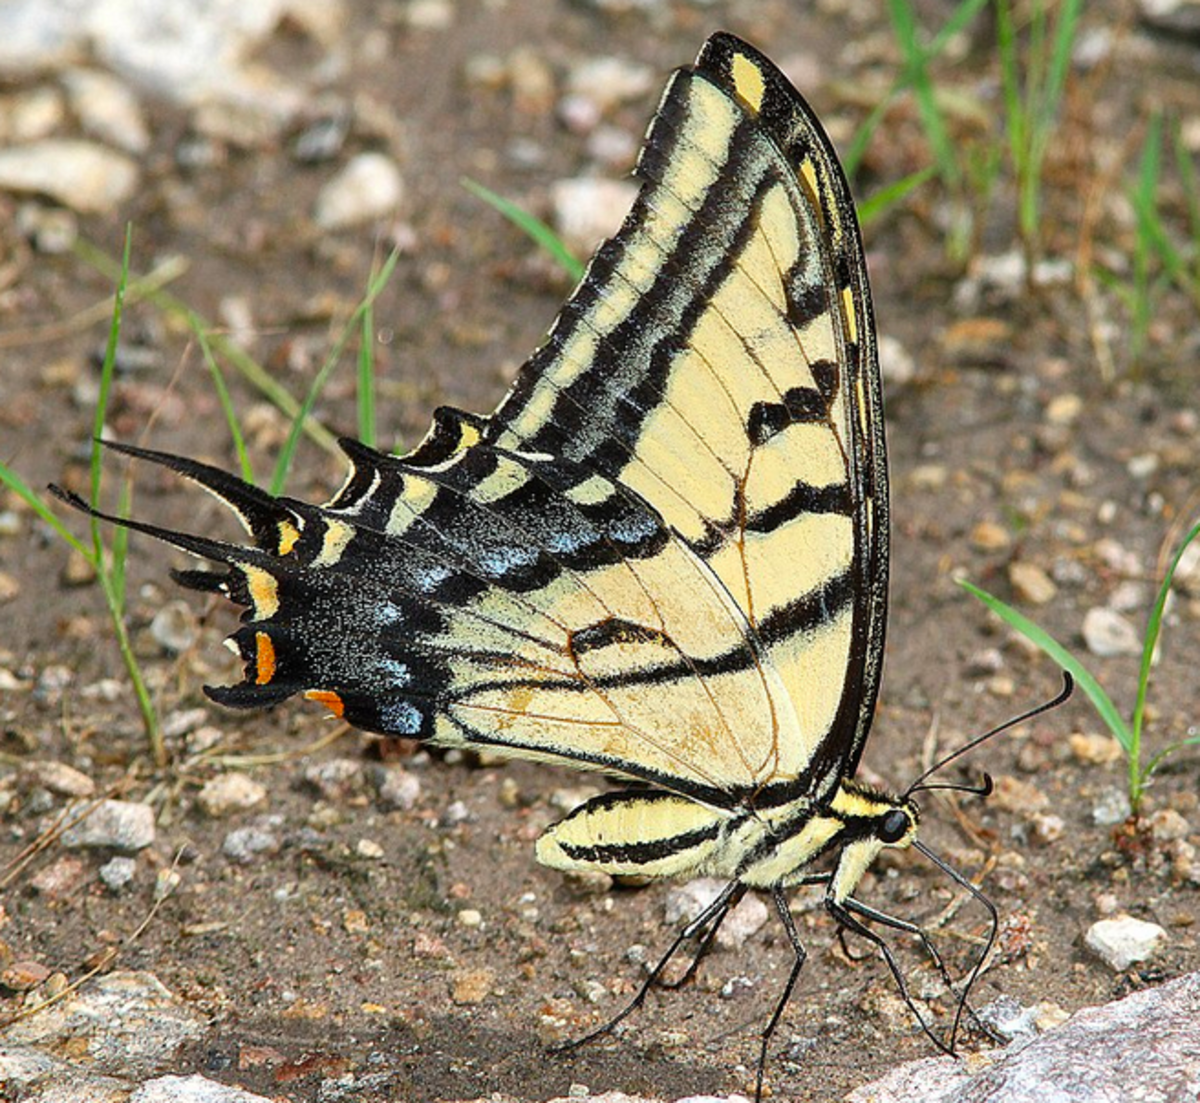 The two-tailed swallowtail